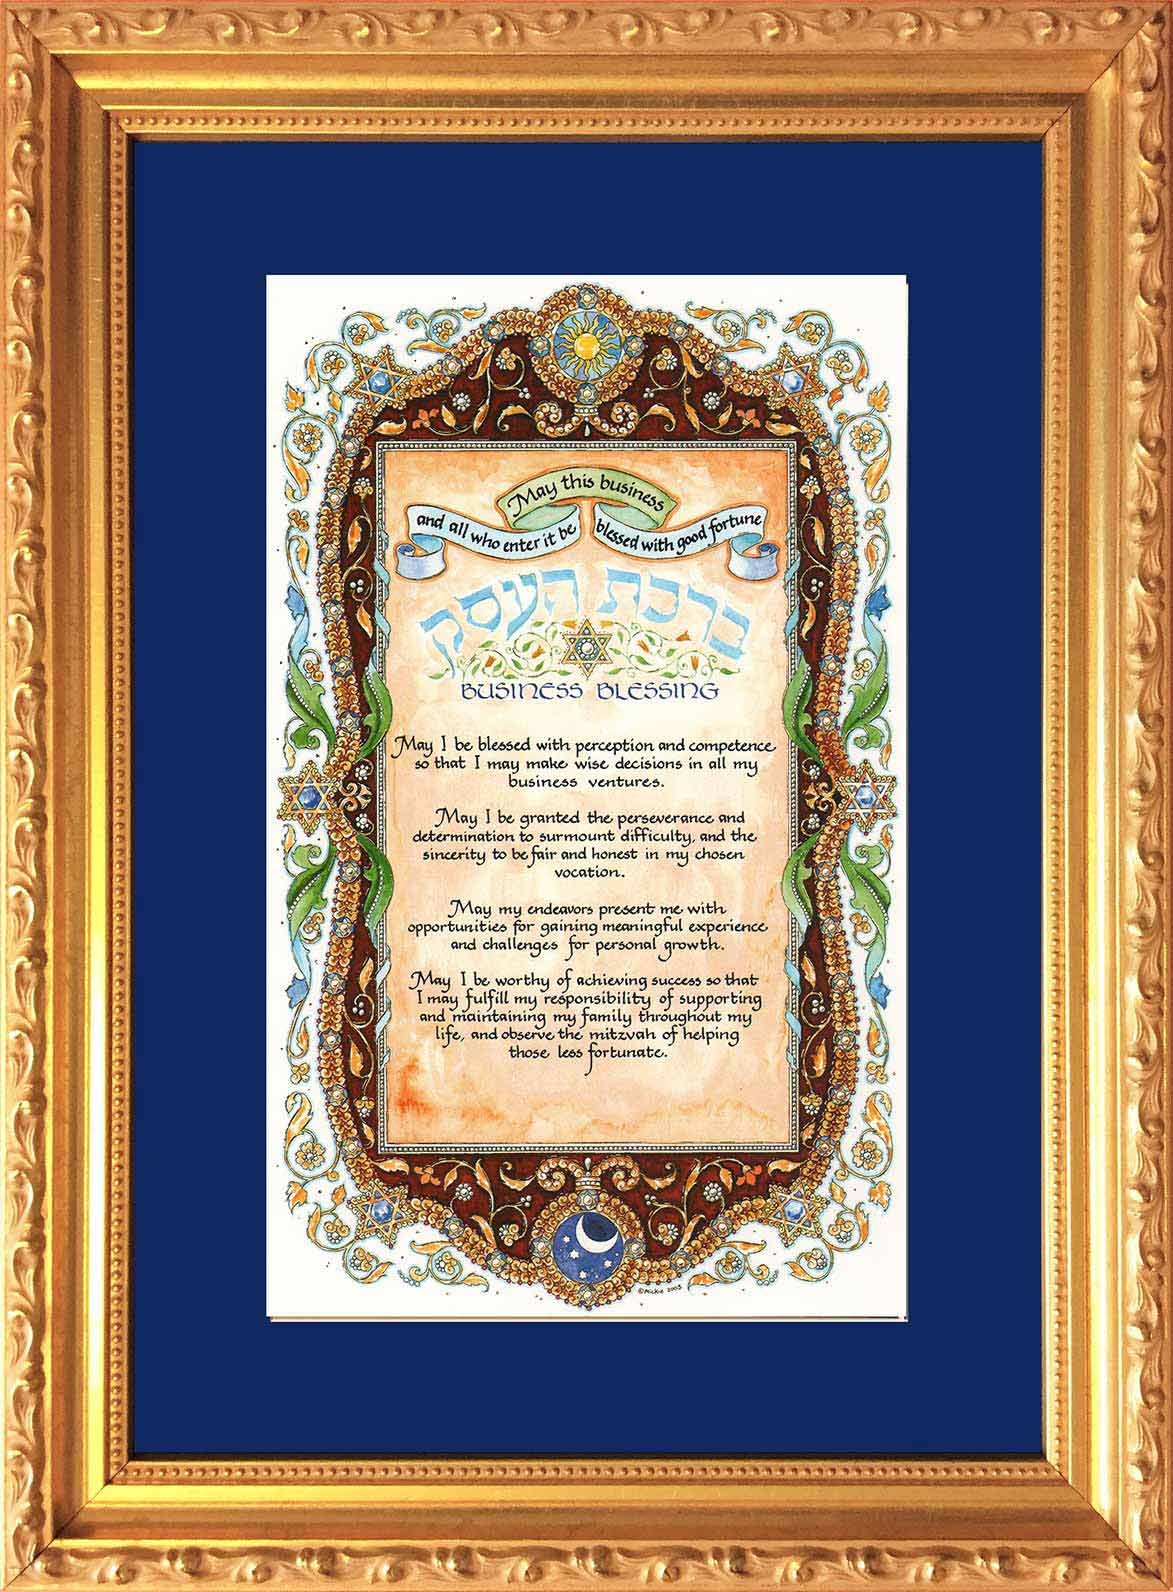 Bus-2 Business Blessing Framed Art by Mickie Caspi